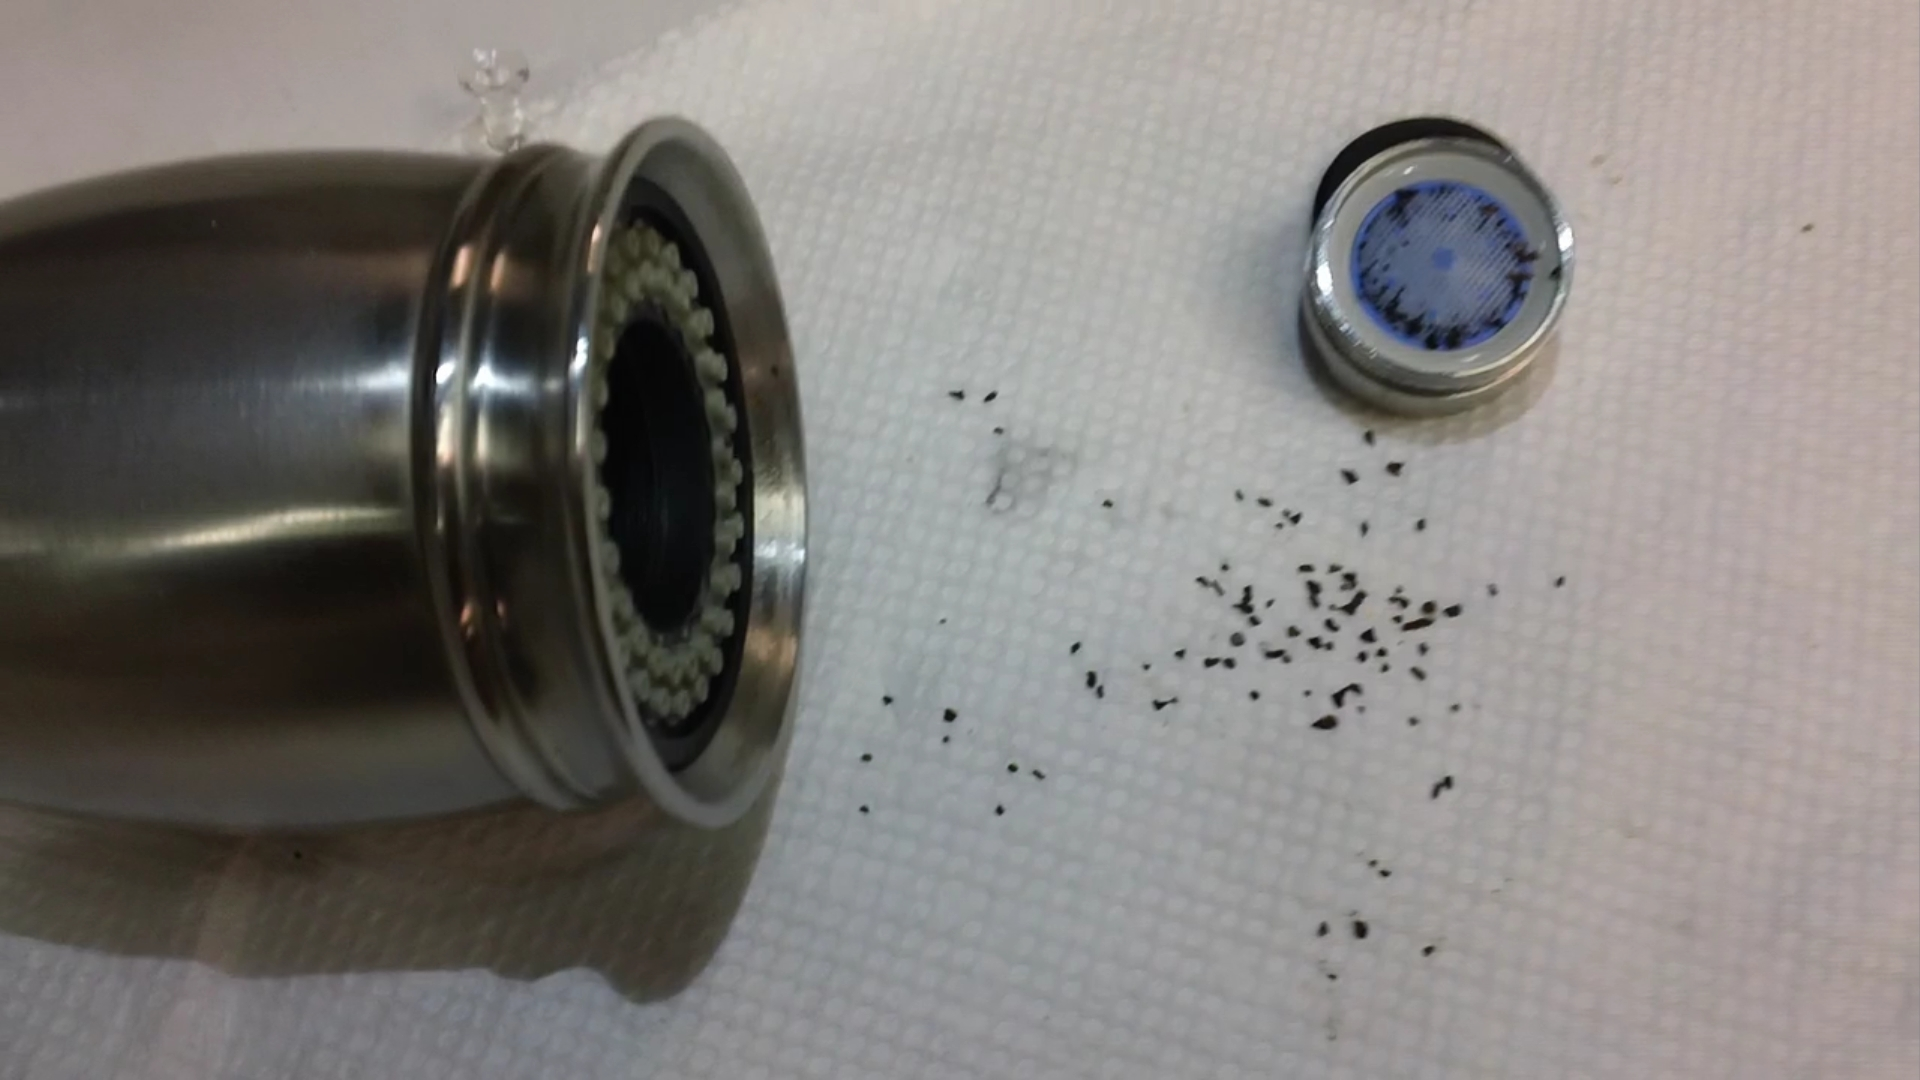 Bathroom Faucet Aerator Removal how to clean the aerator on an eclipse faucet | ano, inc. blog